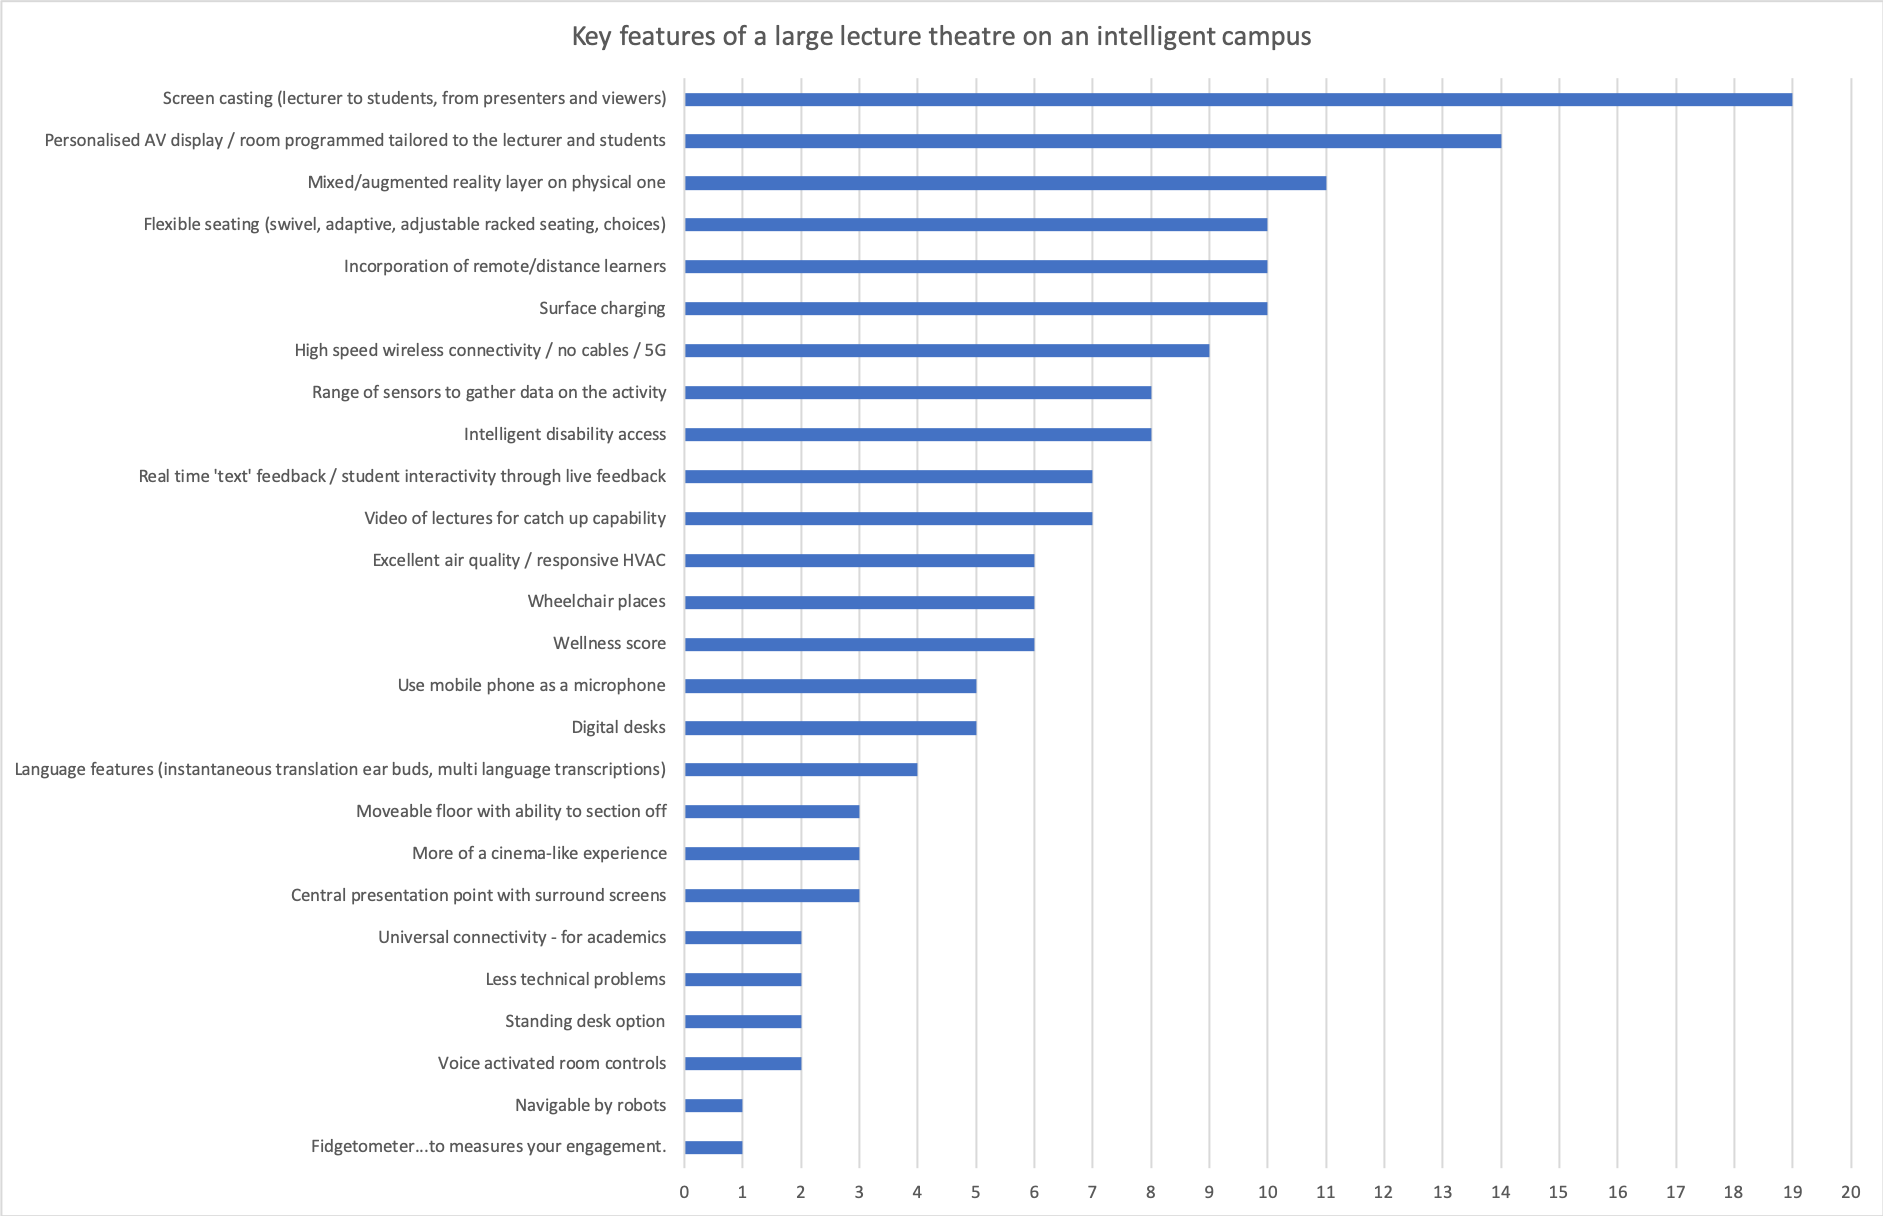 Graph of features recommended by audience members of possible key featutes for a large lecture theatre in the future